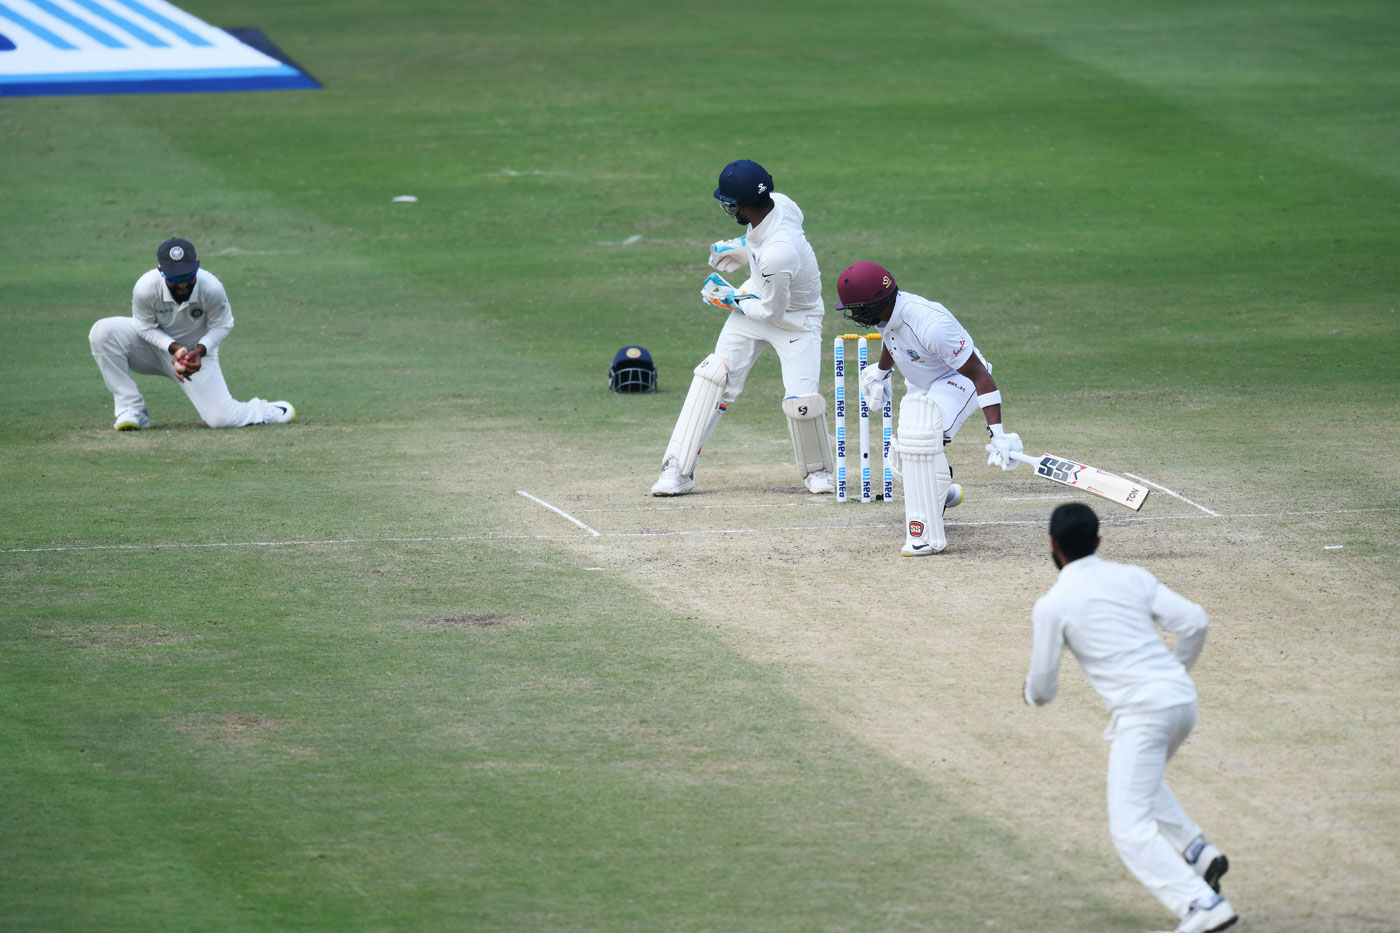 India Vs West Indies 2nd Test Day 3 Highlights